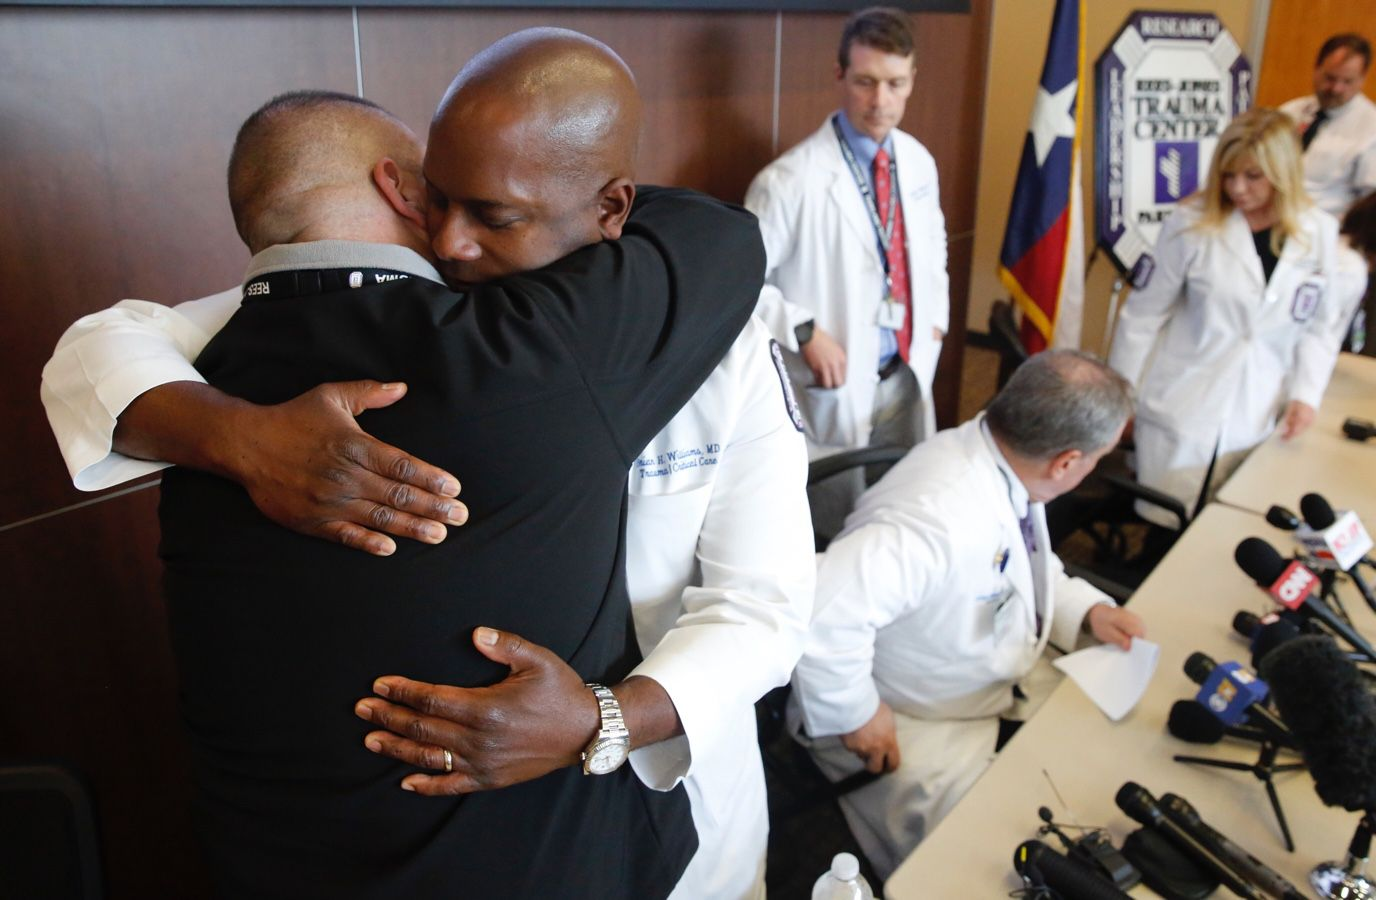 Dr. Alexander Eastman (left), medical director/chief of Rees-Jones Trauma Center, and Dr. Brian Williams, staff surgeon, Rees-Jones Trauma Center, embraced after speaking about the mass shooting of Dallas police officers at an emotional press conference at Parkland Hospital.